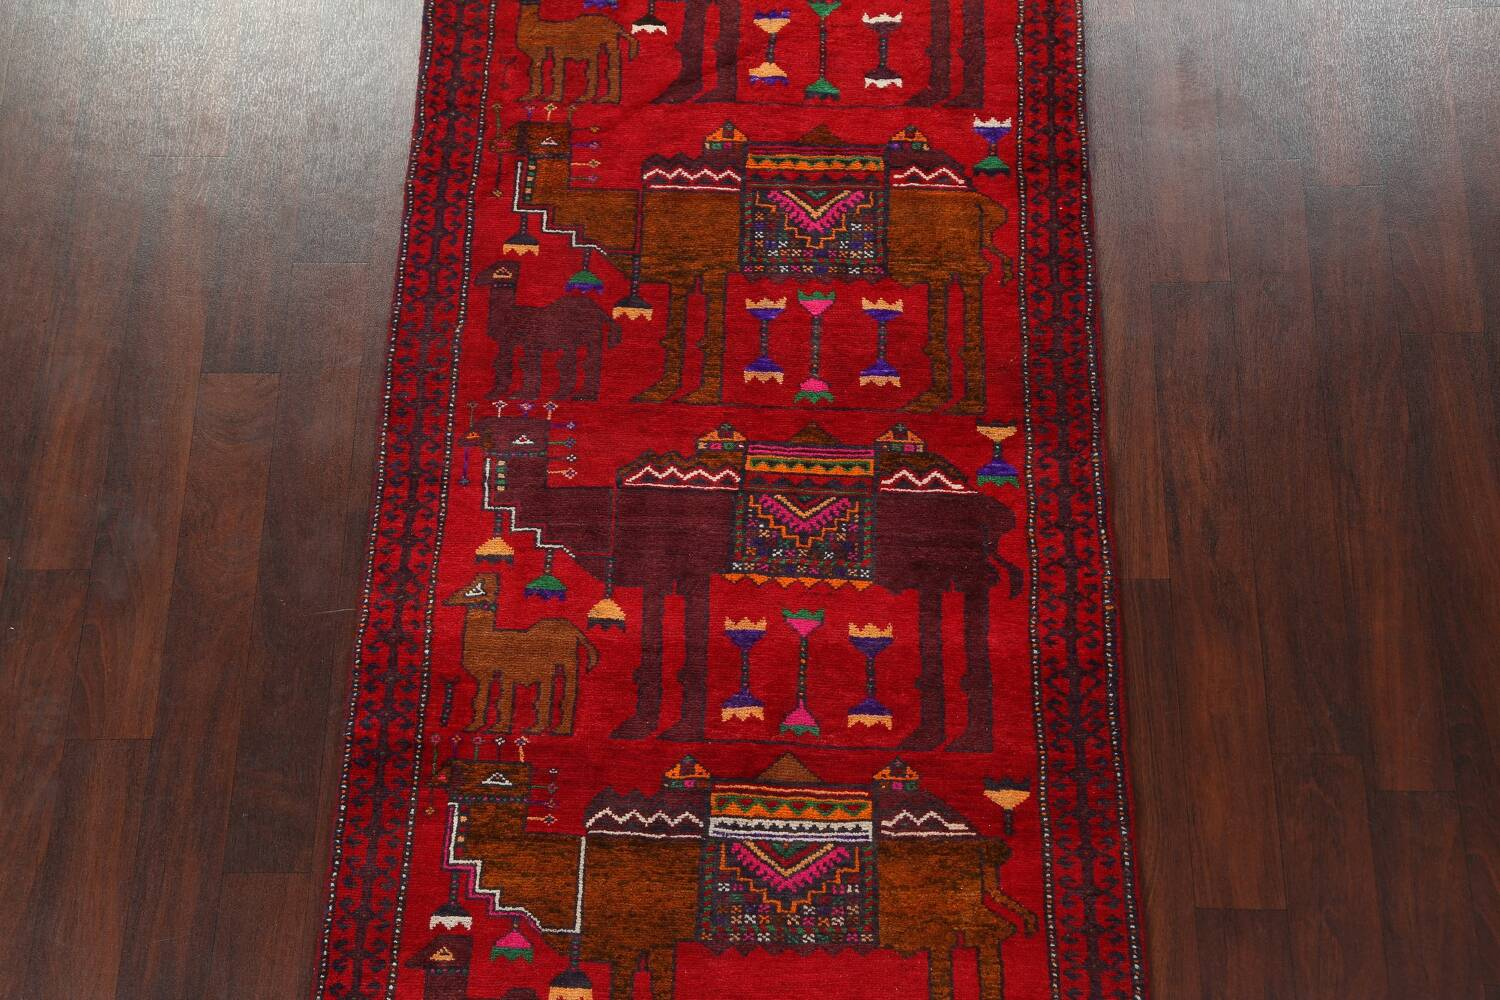 Animal Pictorial Balouch Persian Area Rug 4x8 image 3